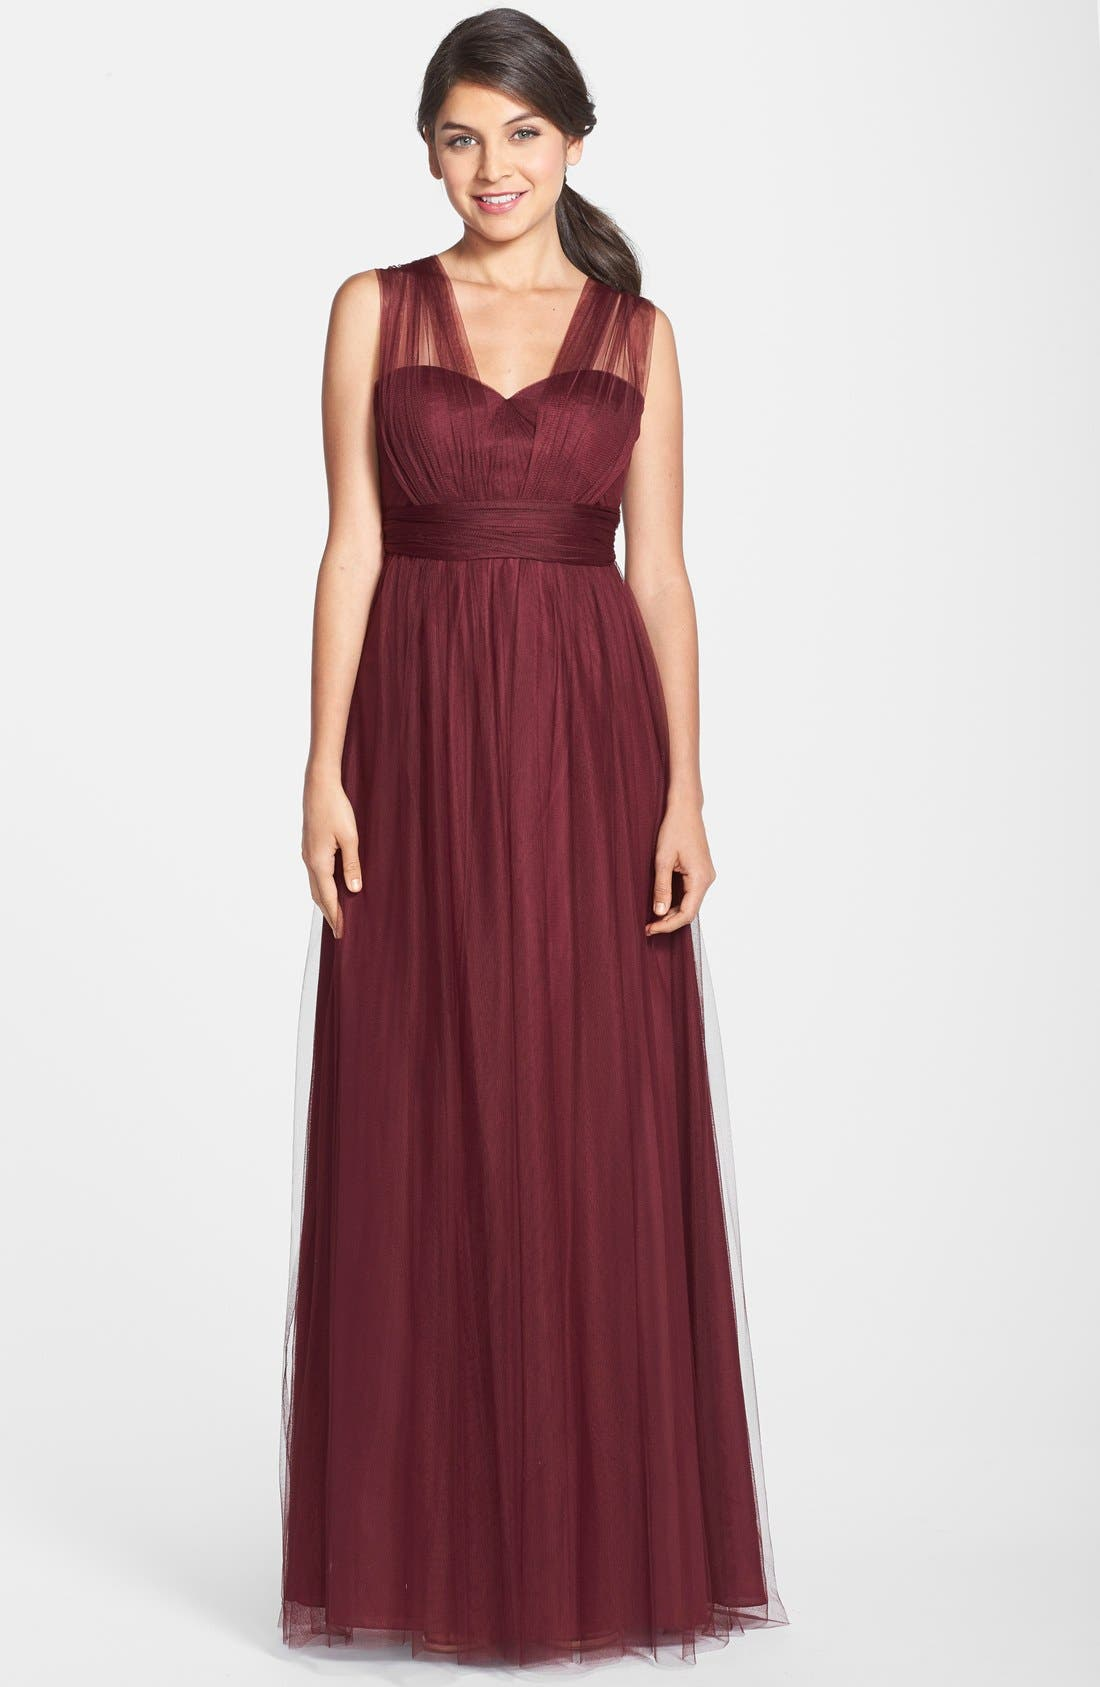 Annabelle Convertible Tulle Column Dress,                             Alternate thumbnail 92, color,